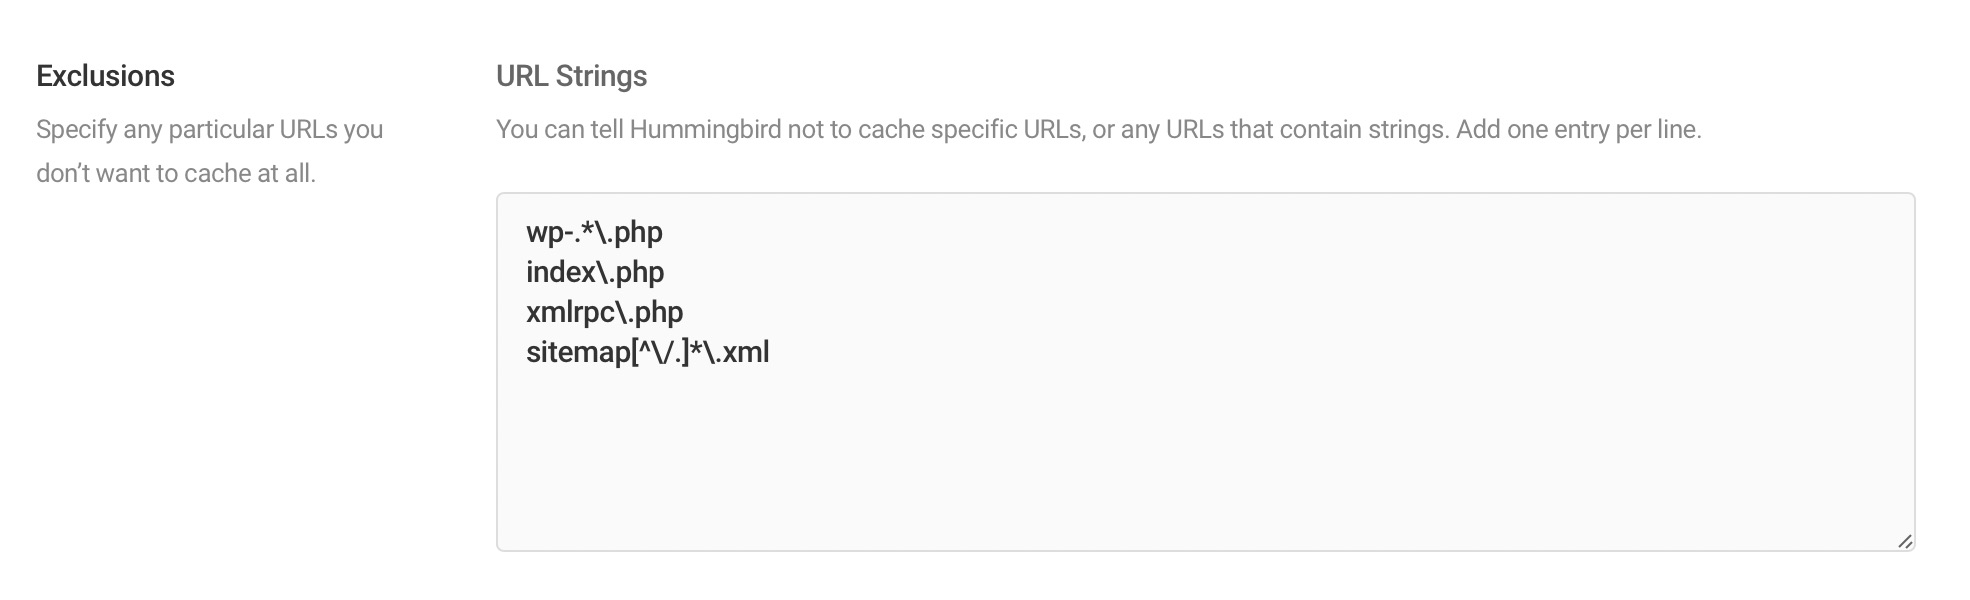 Exclusions in Hummingbird Cache